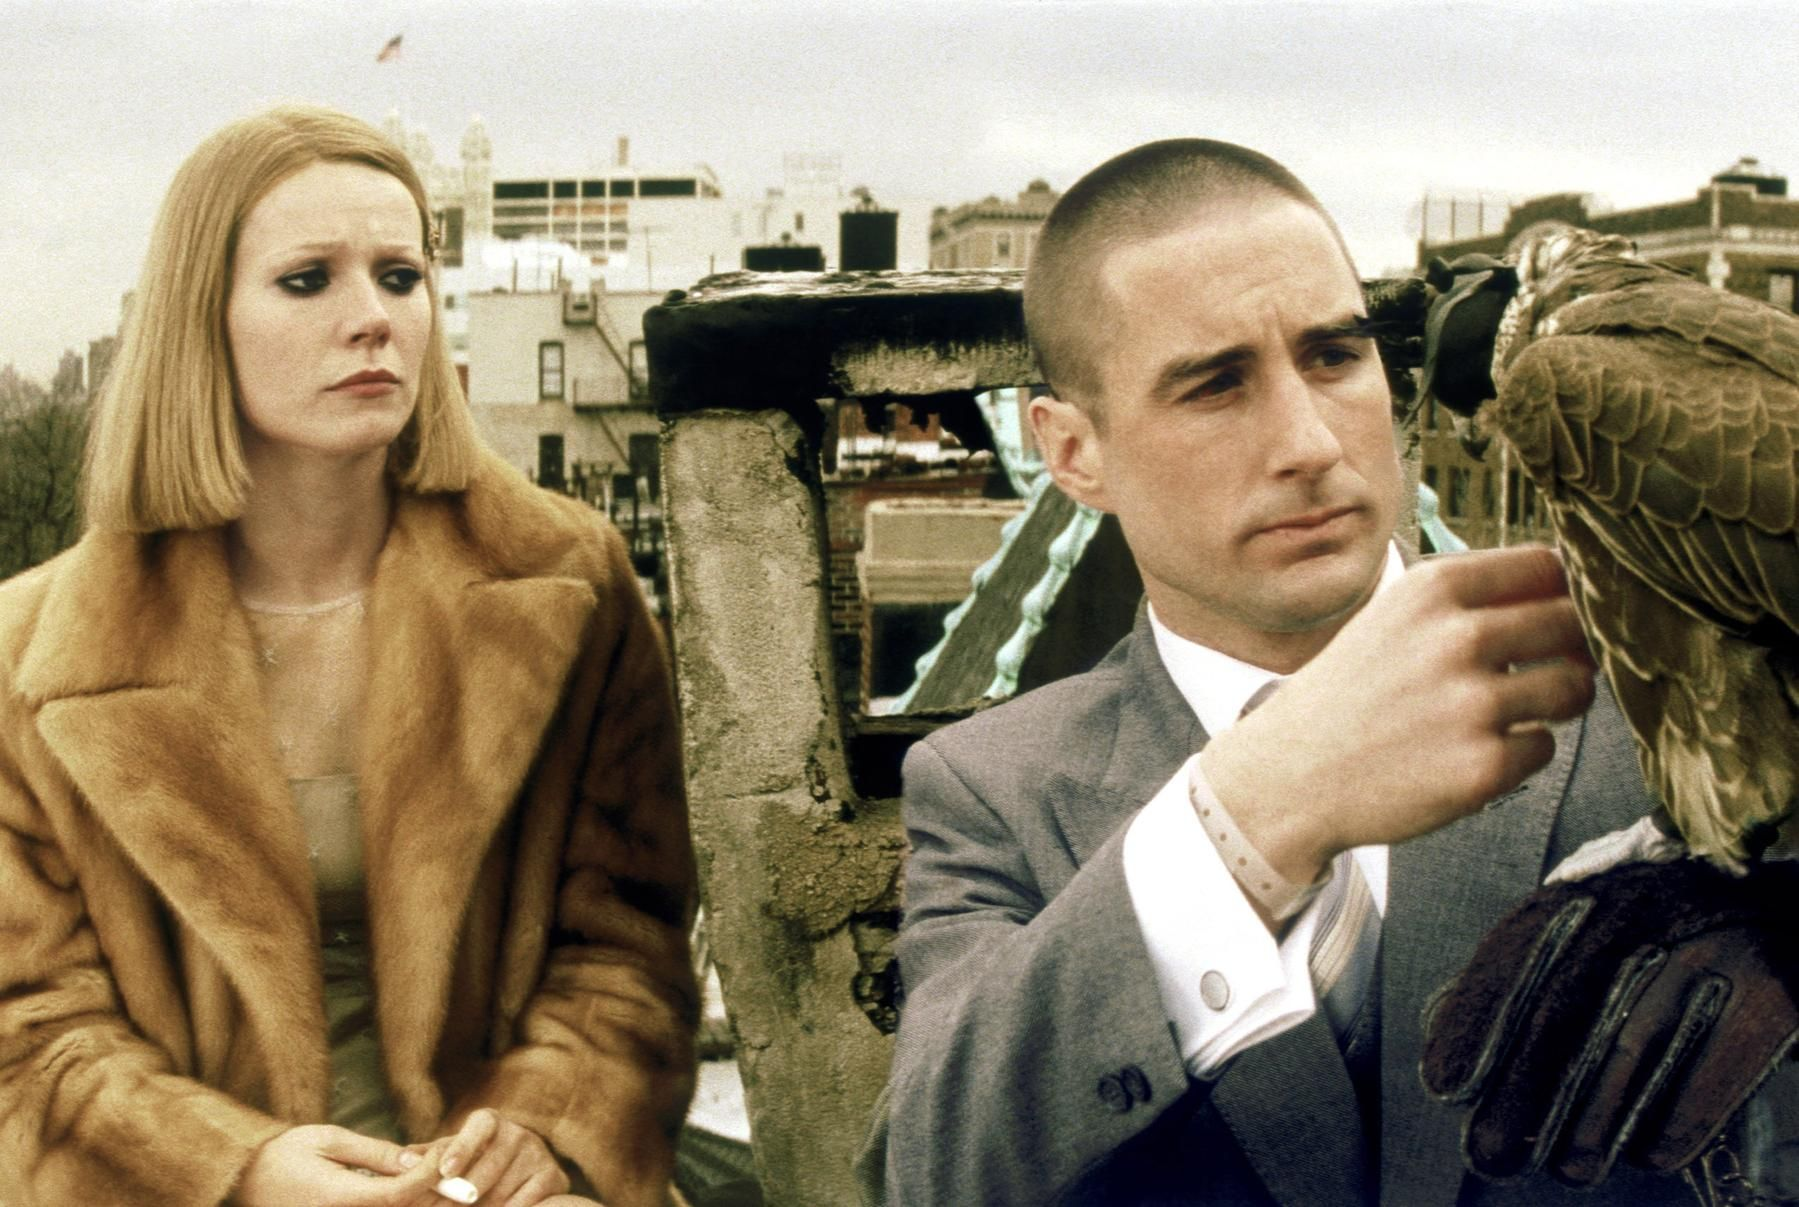 The Paltrow Look Book The royal tenenbaums